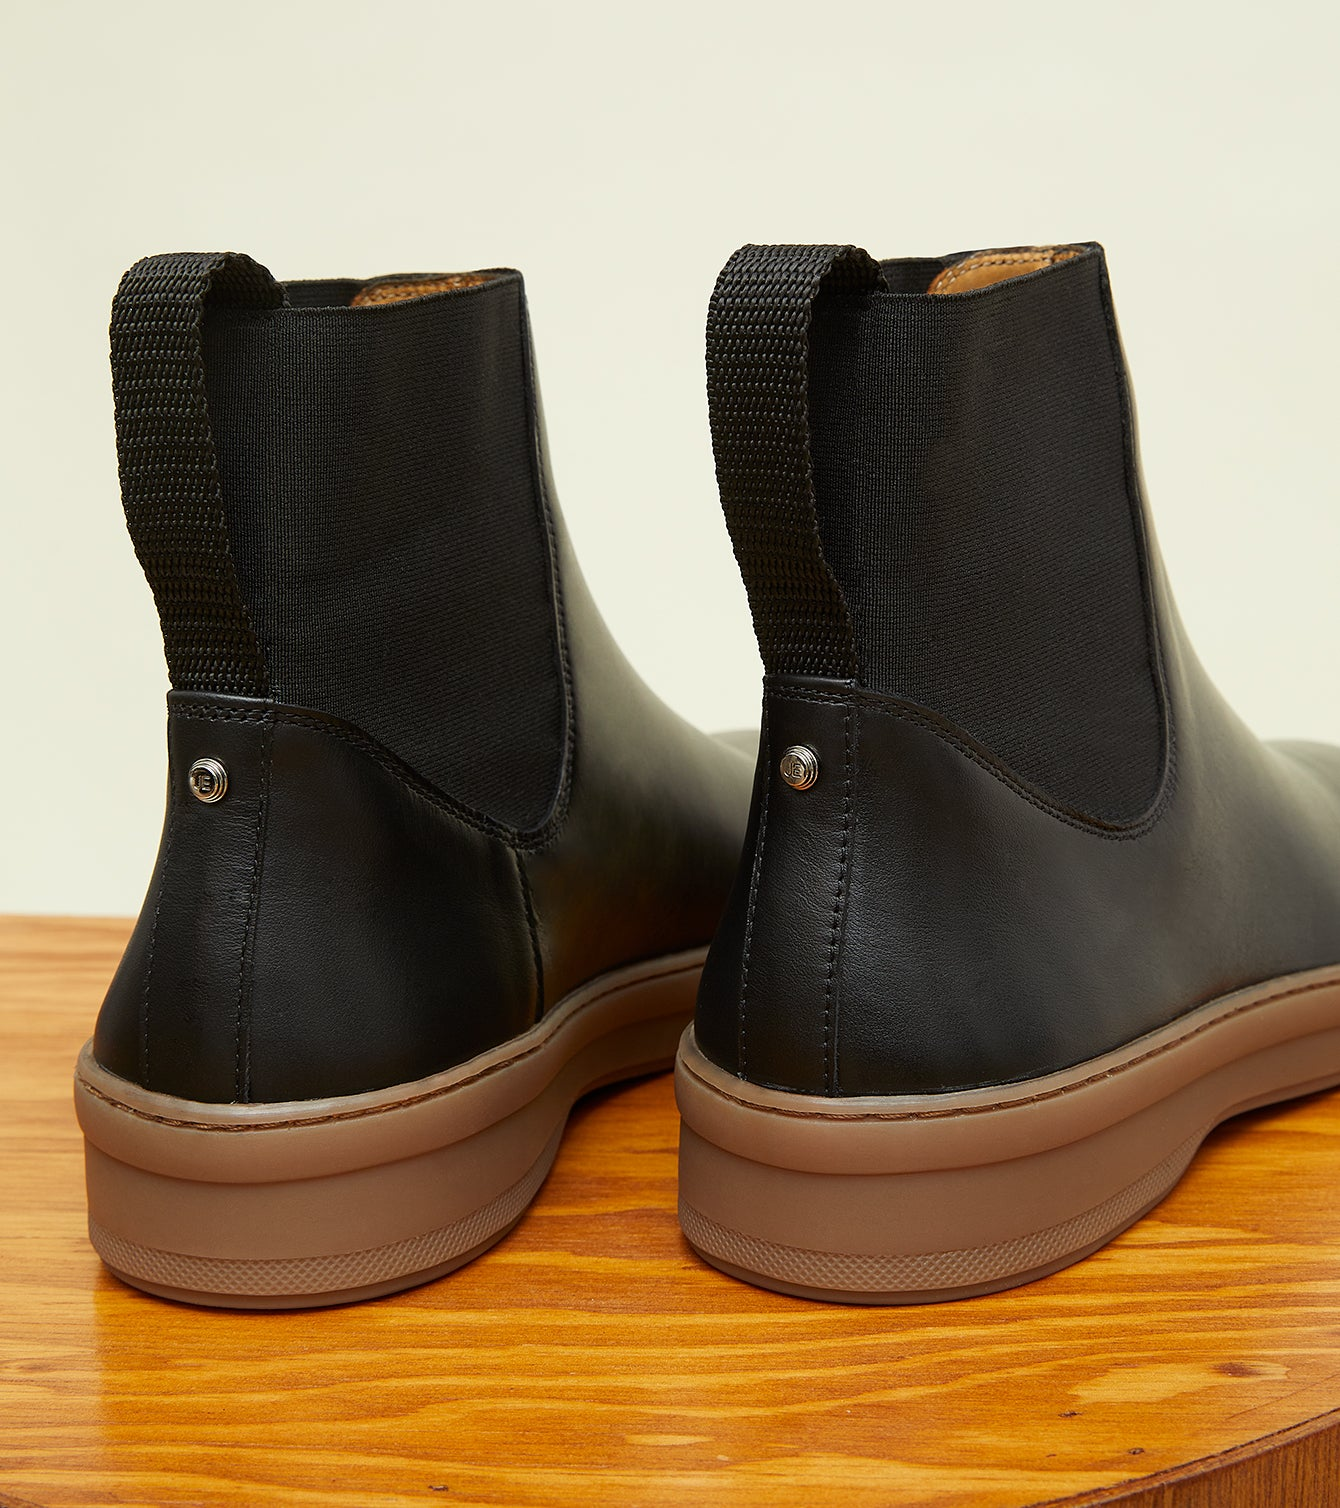 black-polished-leather-tan-sole